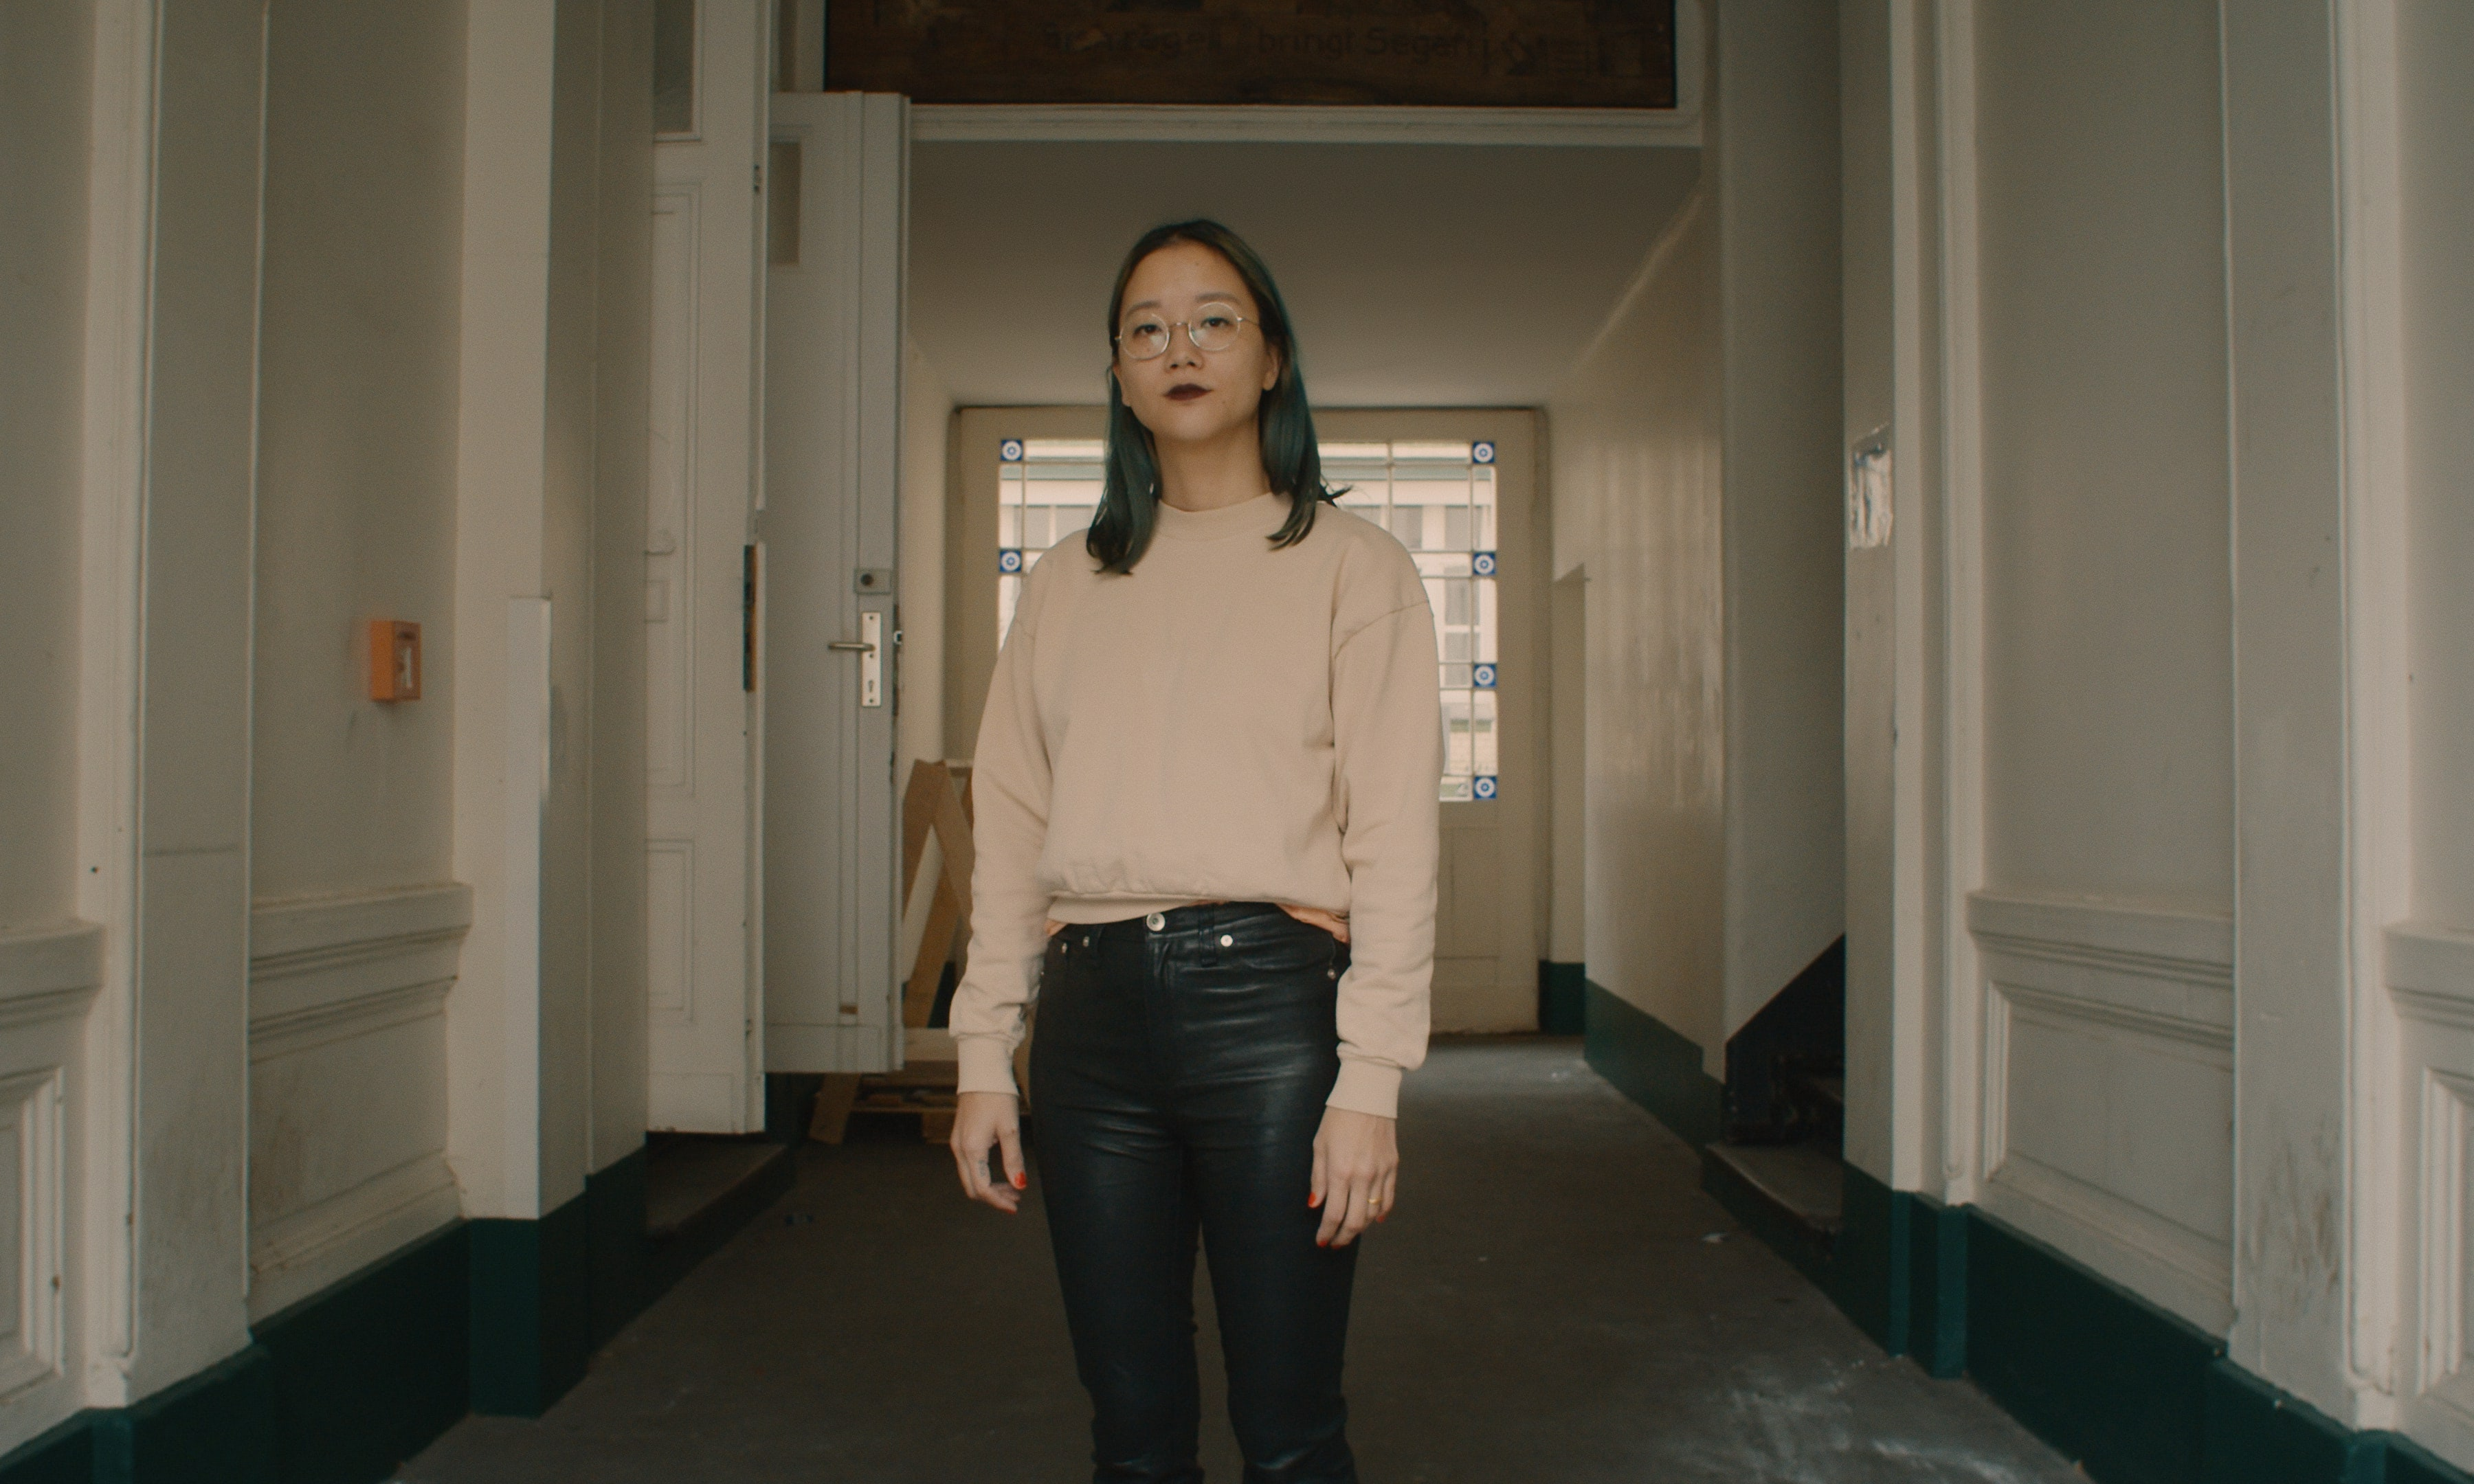 Christine Sun Kim standing in the hallway of an old building.